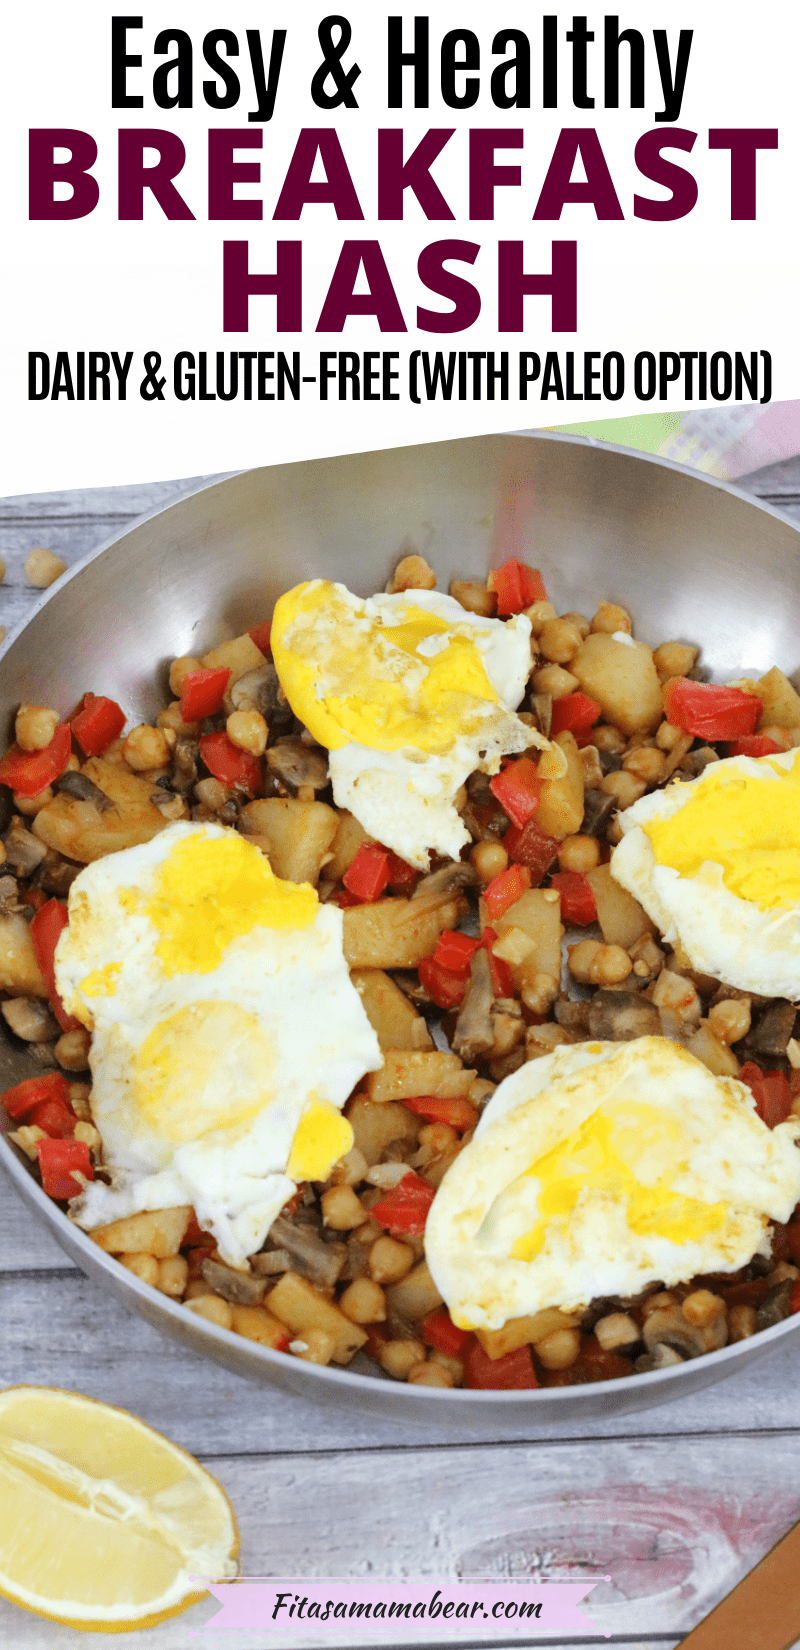 Pinterest image with text: healthy breakfast has in a stainless steel pan topped with eggs and a wooden spoon and lemon beside the pan